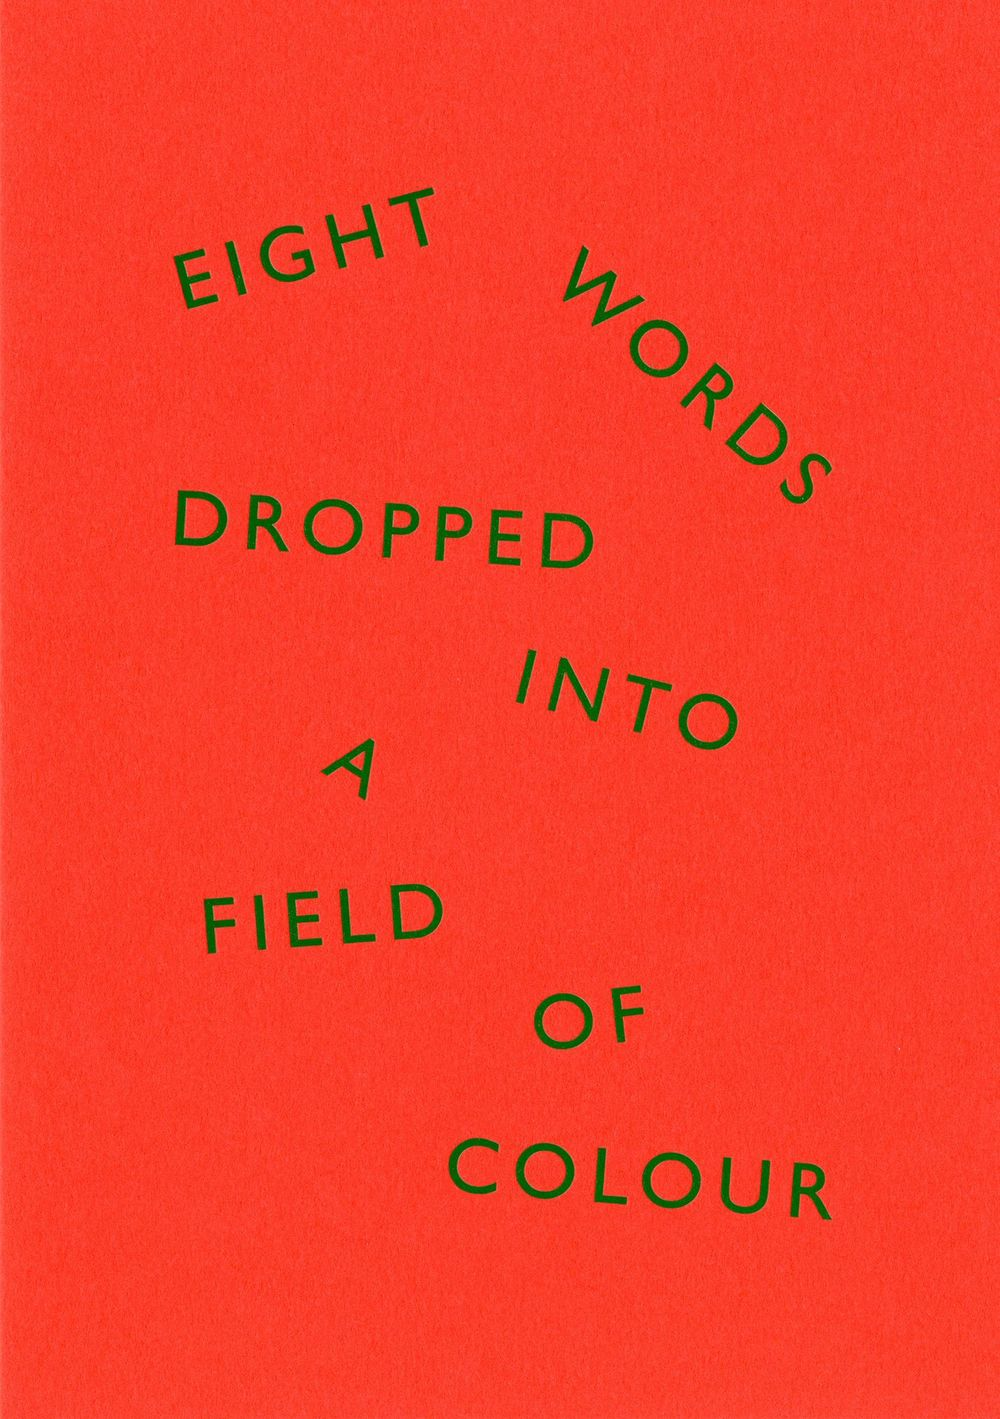 'Eight Words Dropped Into a Field of Colour', David Bellingham, 2013